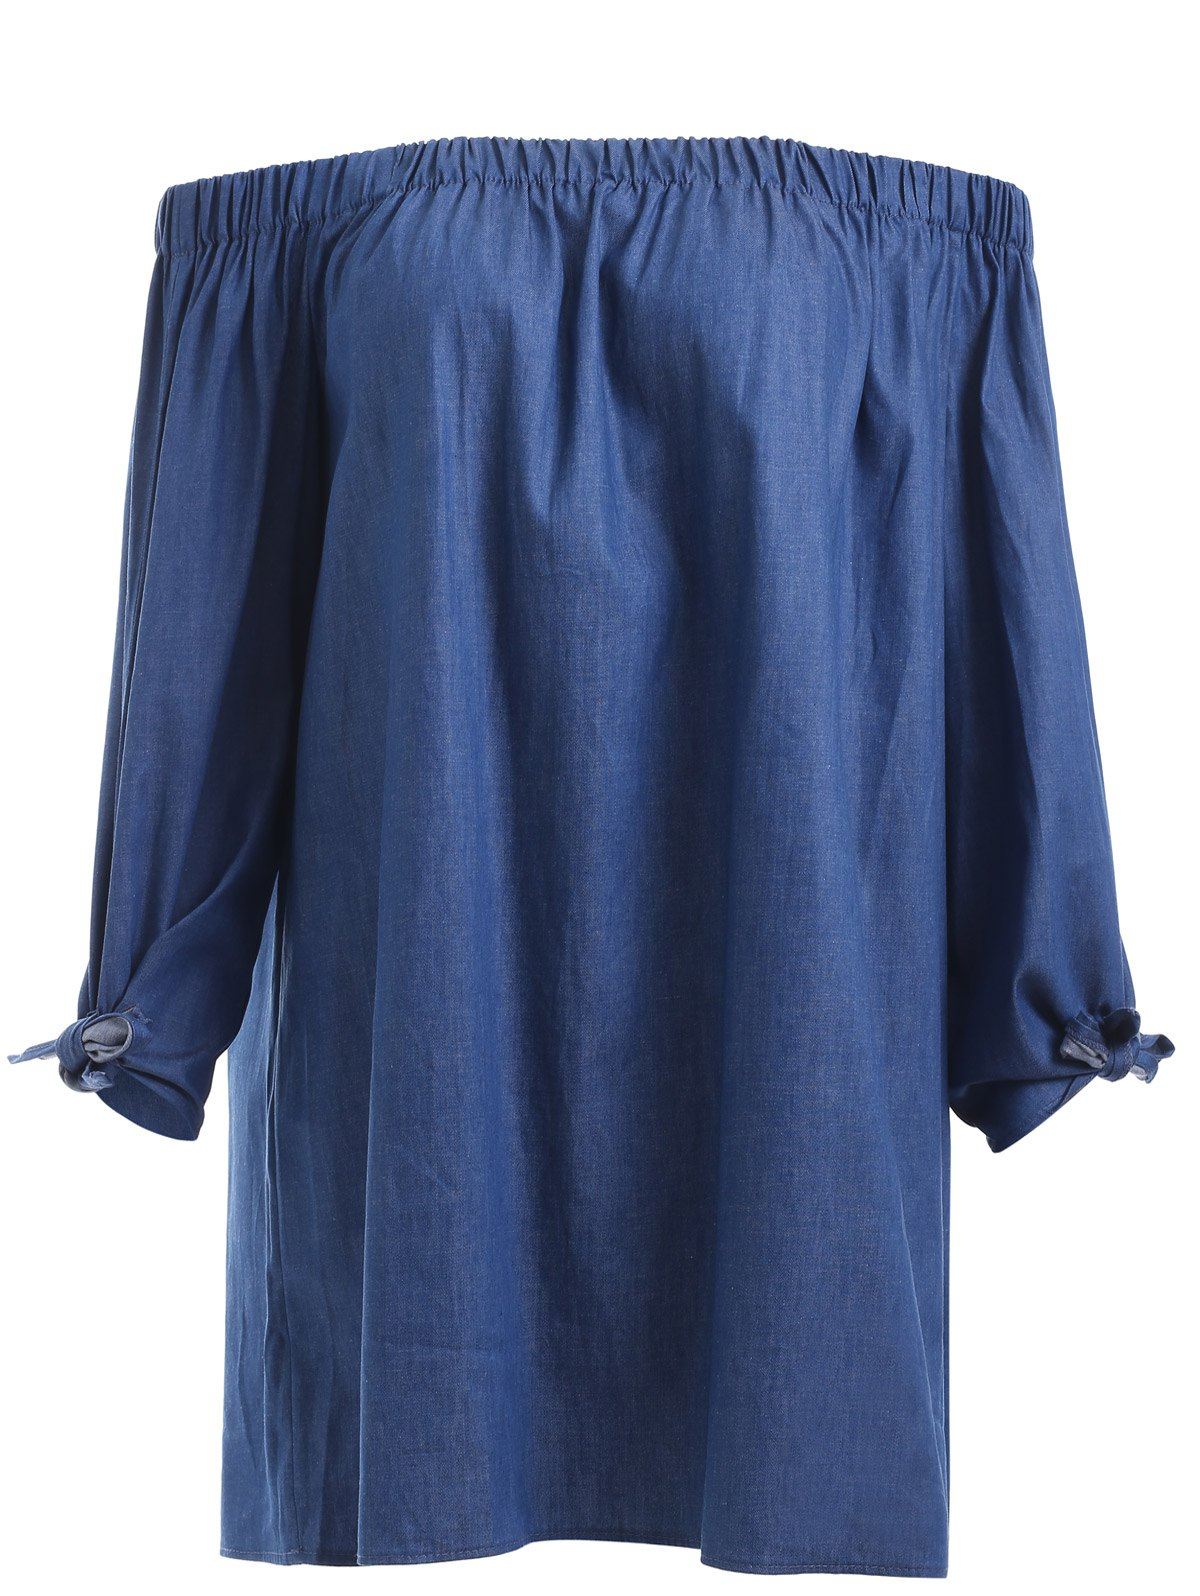 Brief Women's Off-The-Shoulder Tied Denim Blouse - DENIM BLUE S